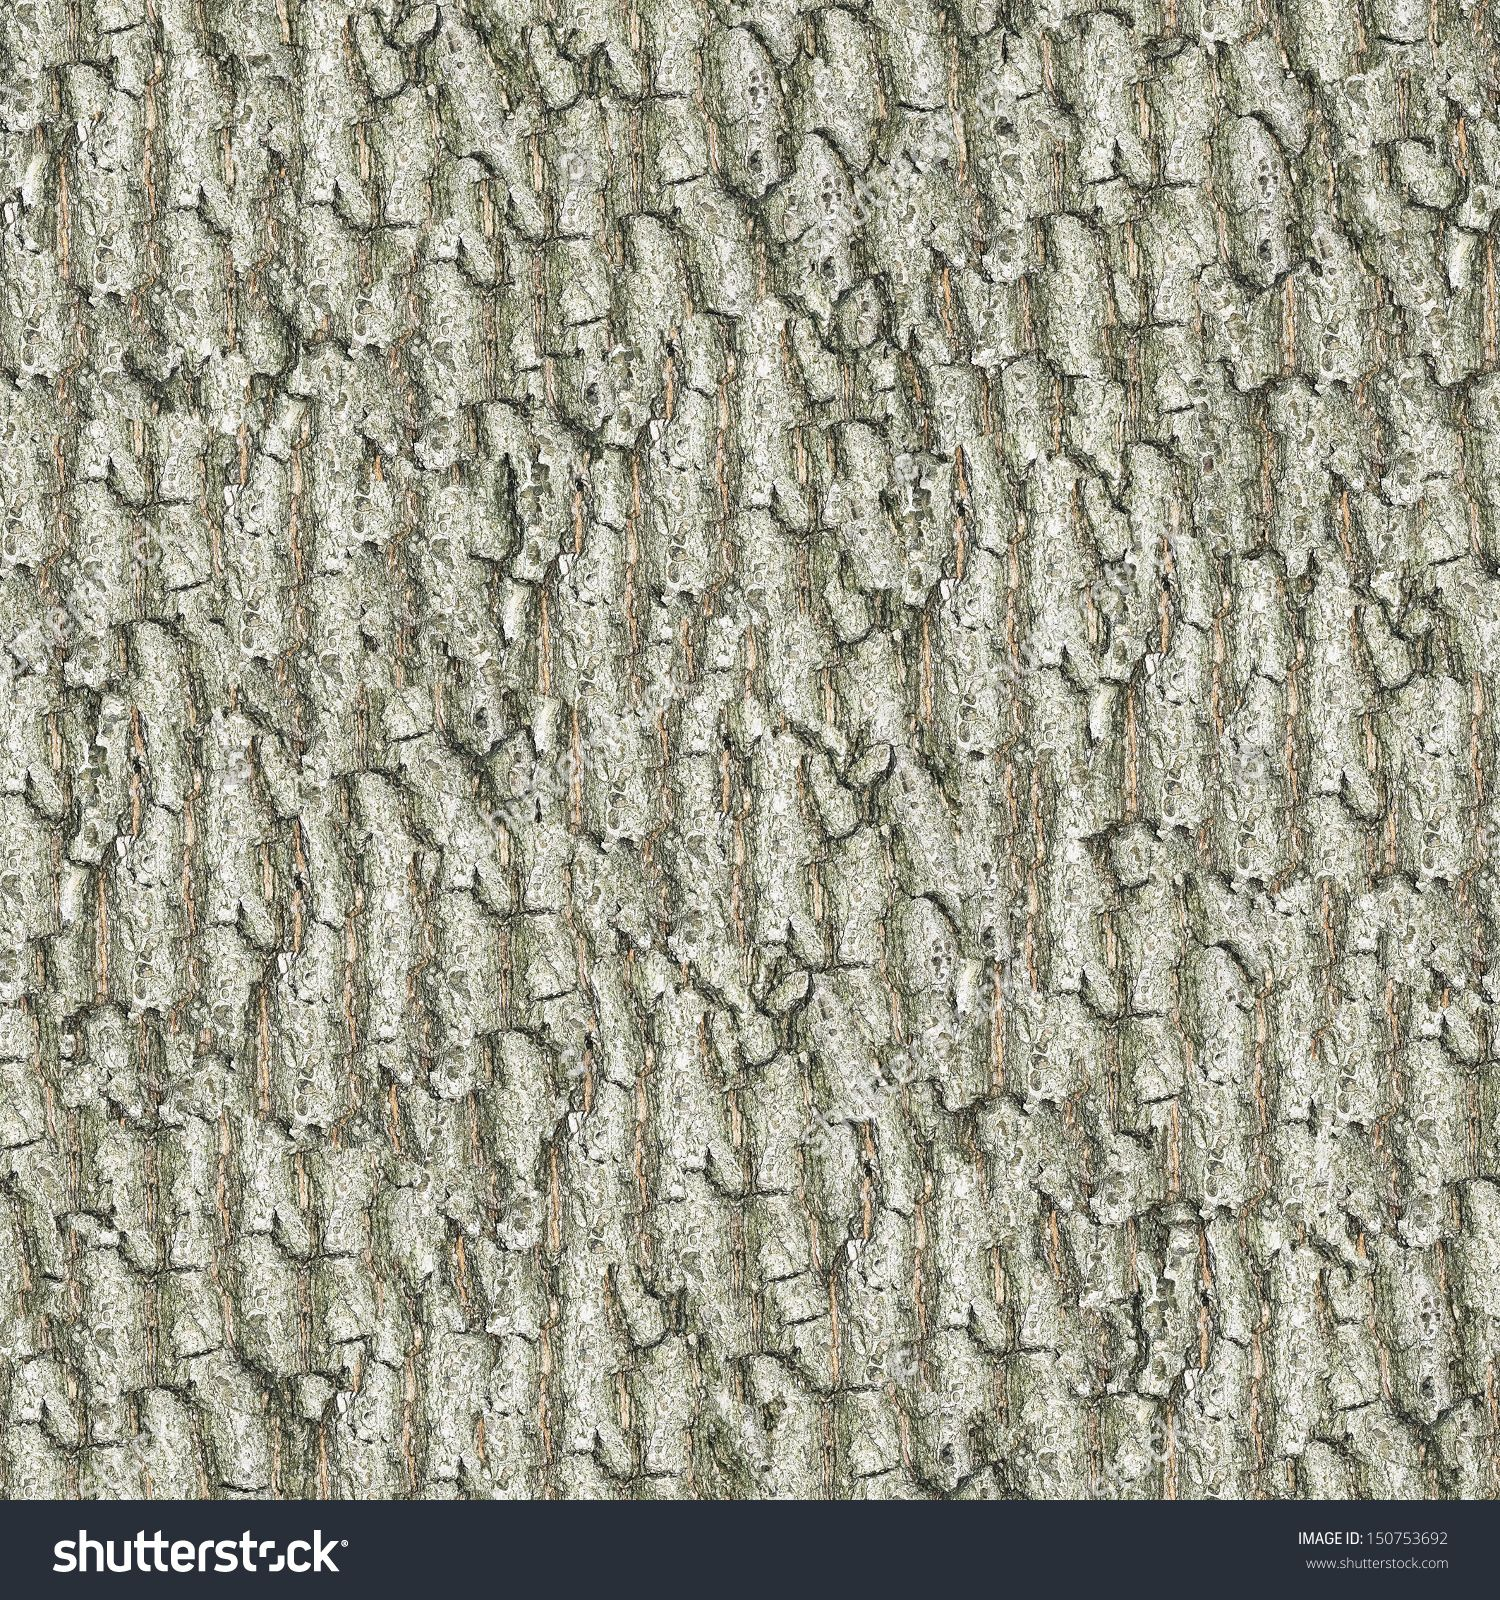 stock-photo-old-oak-bark-seamless-texture-150753692.jpg (1500×1600 ...